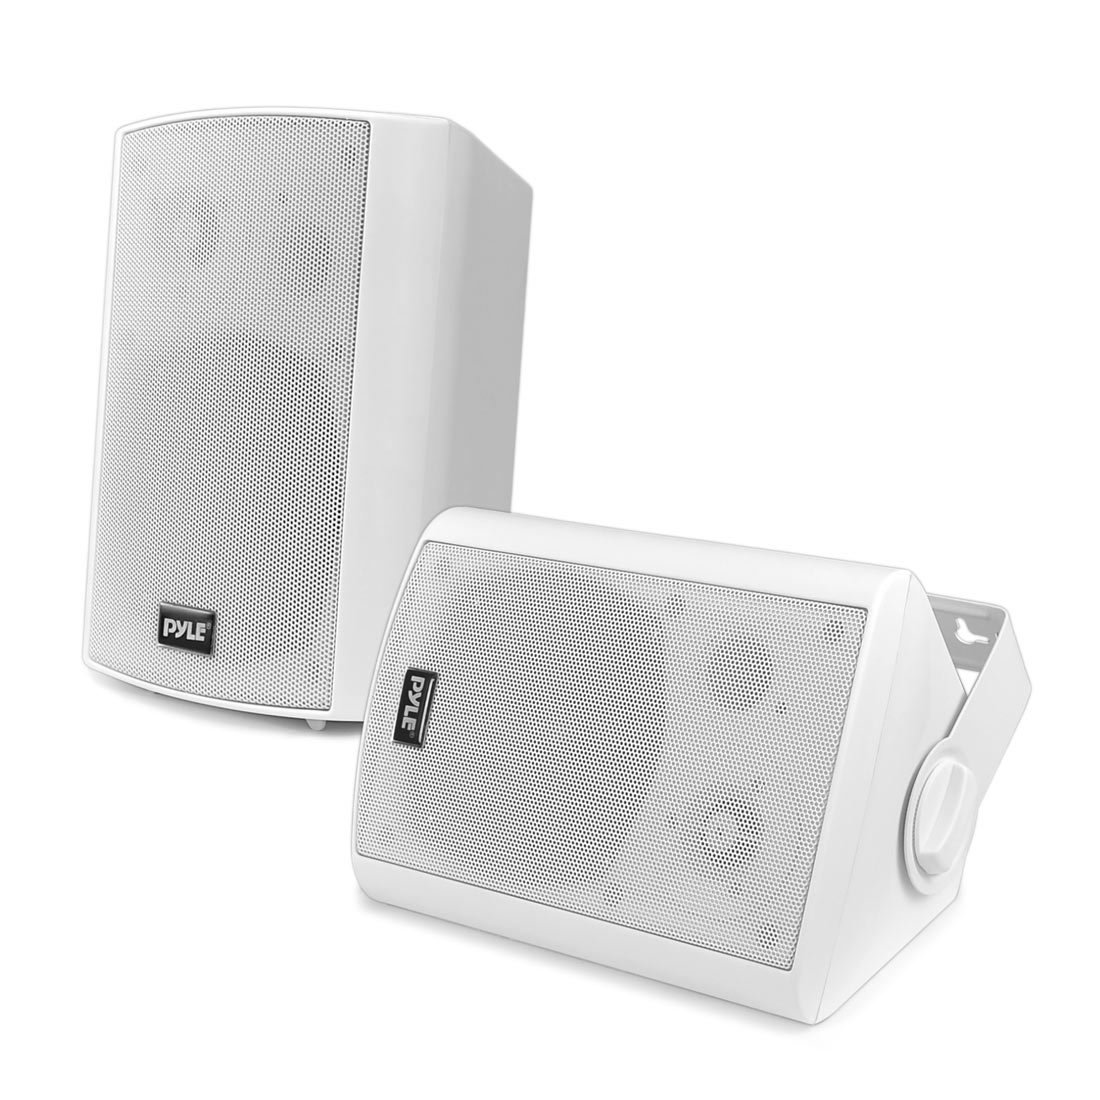 Wall Mount Home Speaker System - Active + Passive Pair Wireless Bluetooth Compatible Indoor / Outdoor Waterproof Weatherproof Stereo Sound Speaker Set with AUX IN - Pyle PDWR51BTWT (White) by Pyle